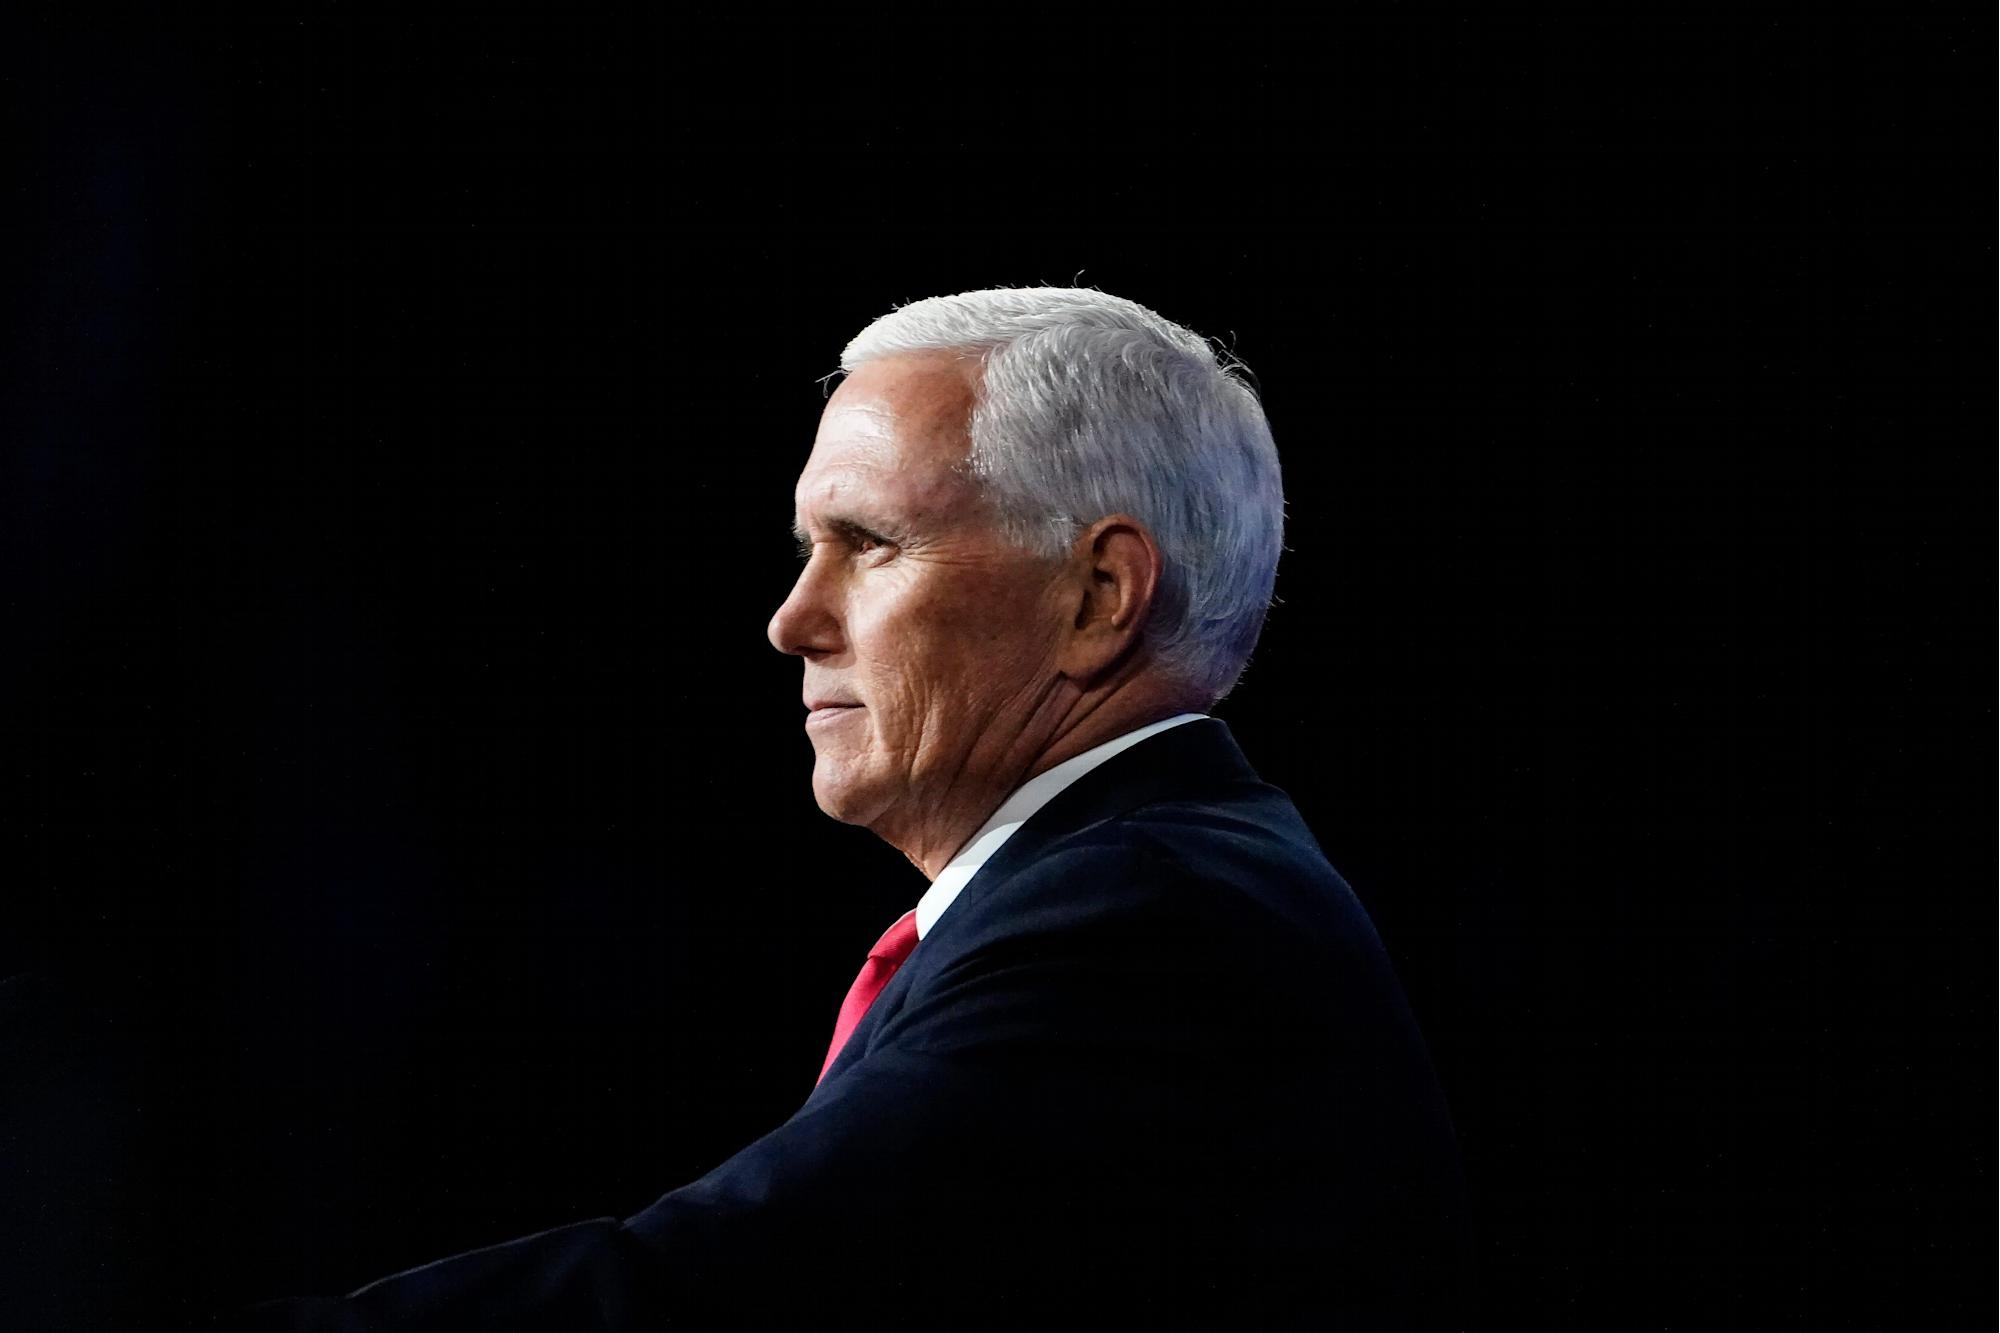 Mike Pence asks judge to toss Gohmert's lawsuit that seeks to overturn election results